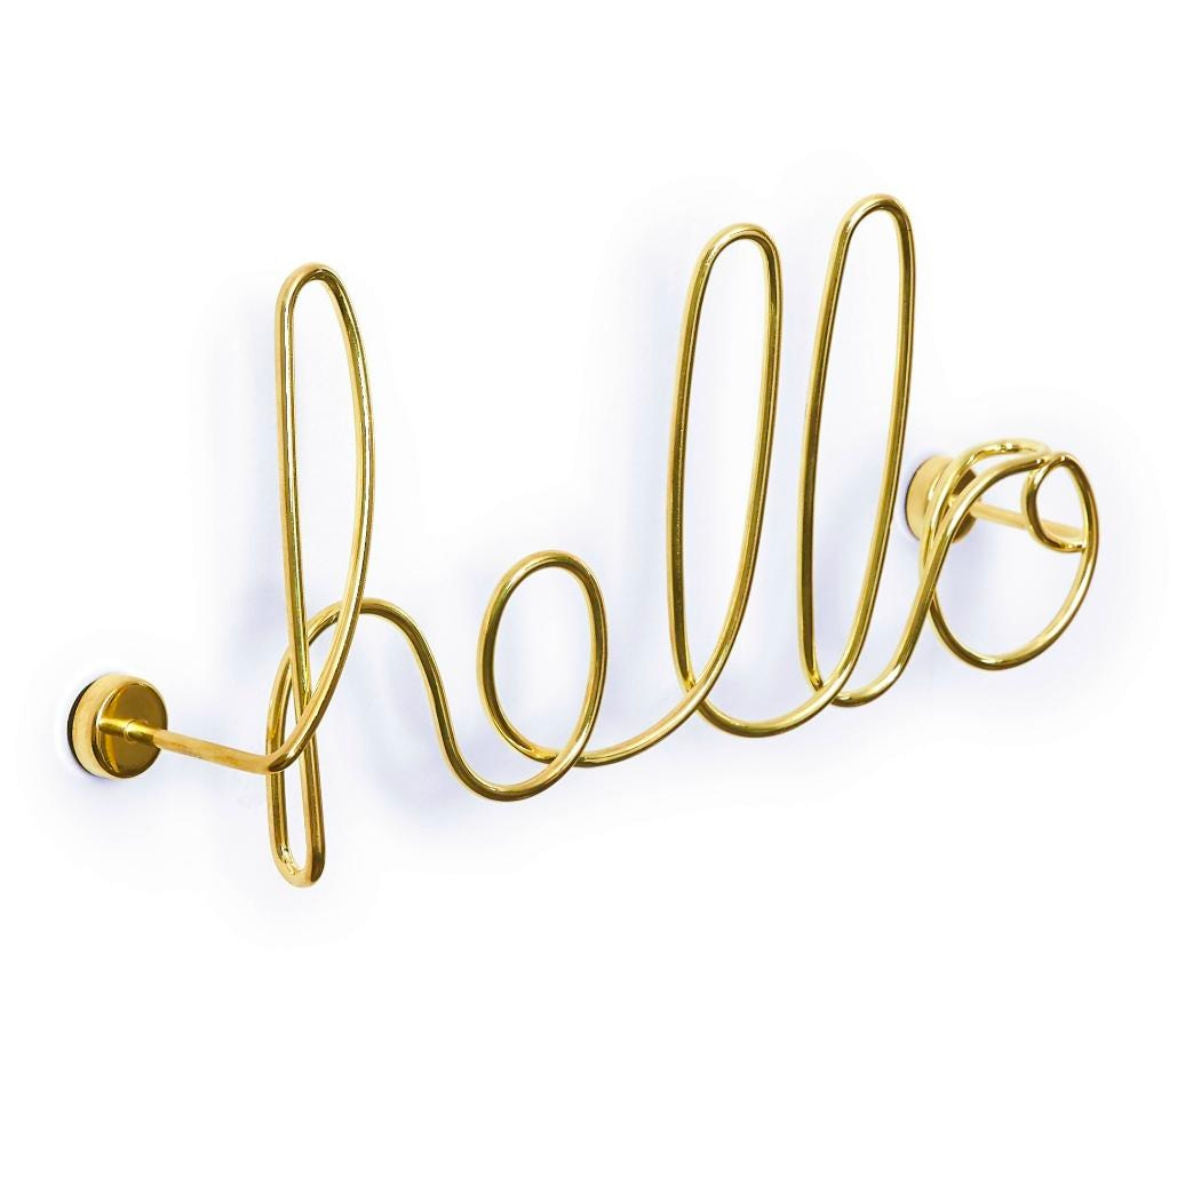 Umbra Wired Hello wall decor